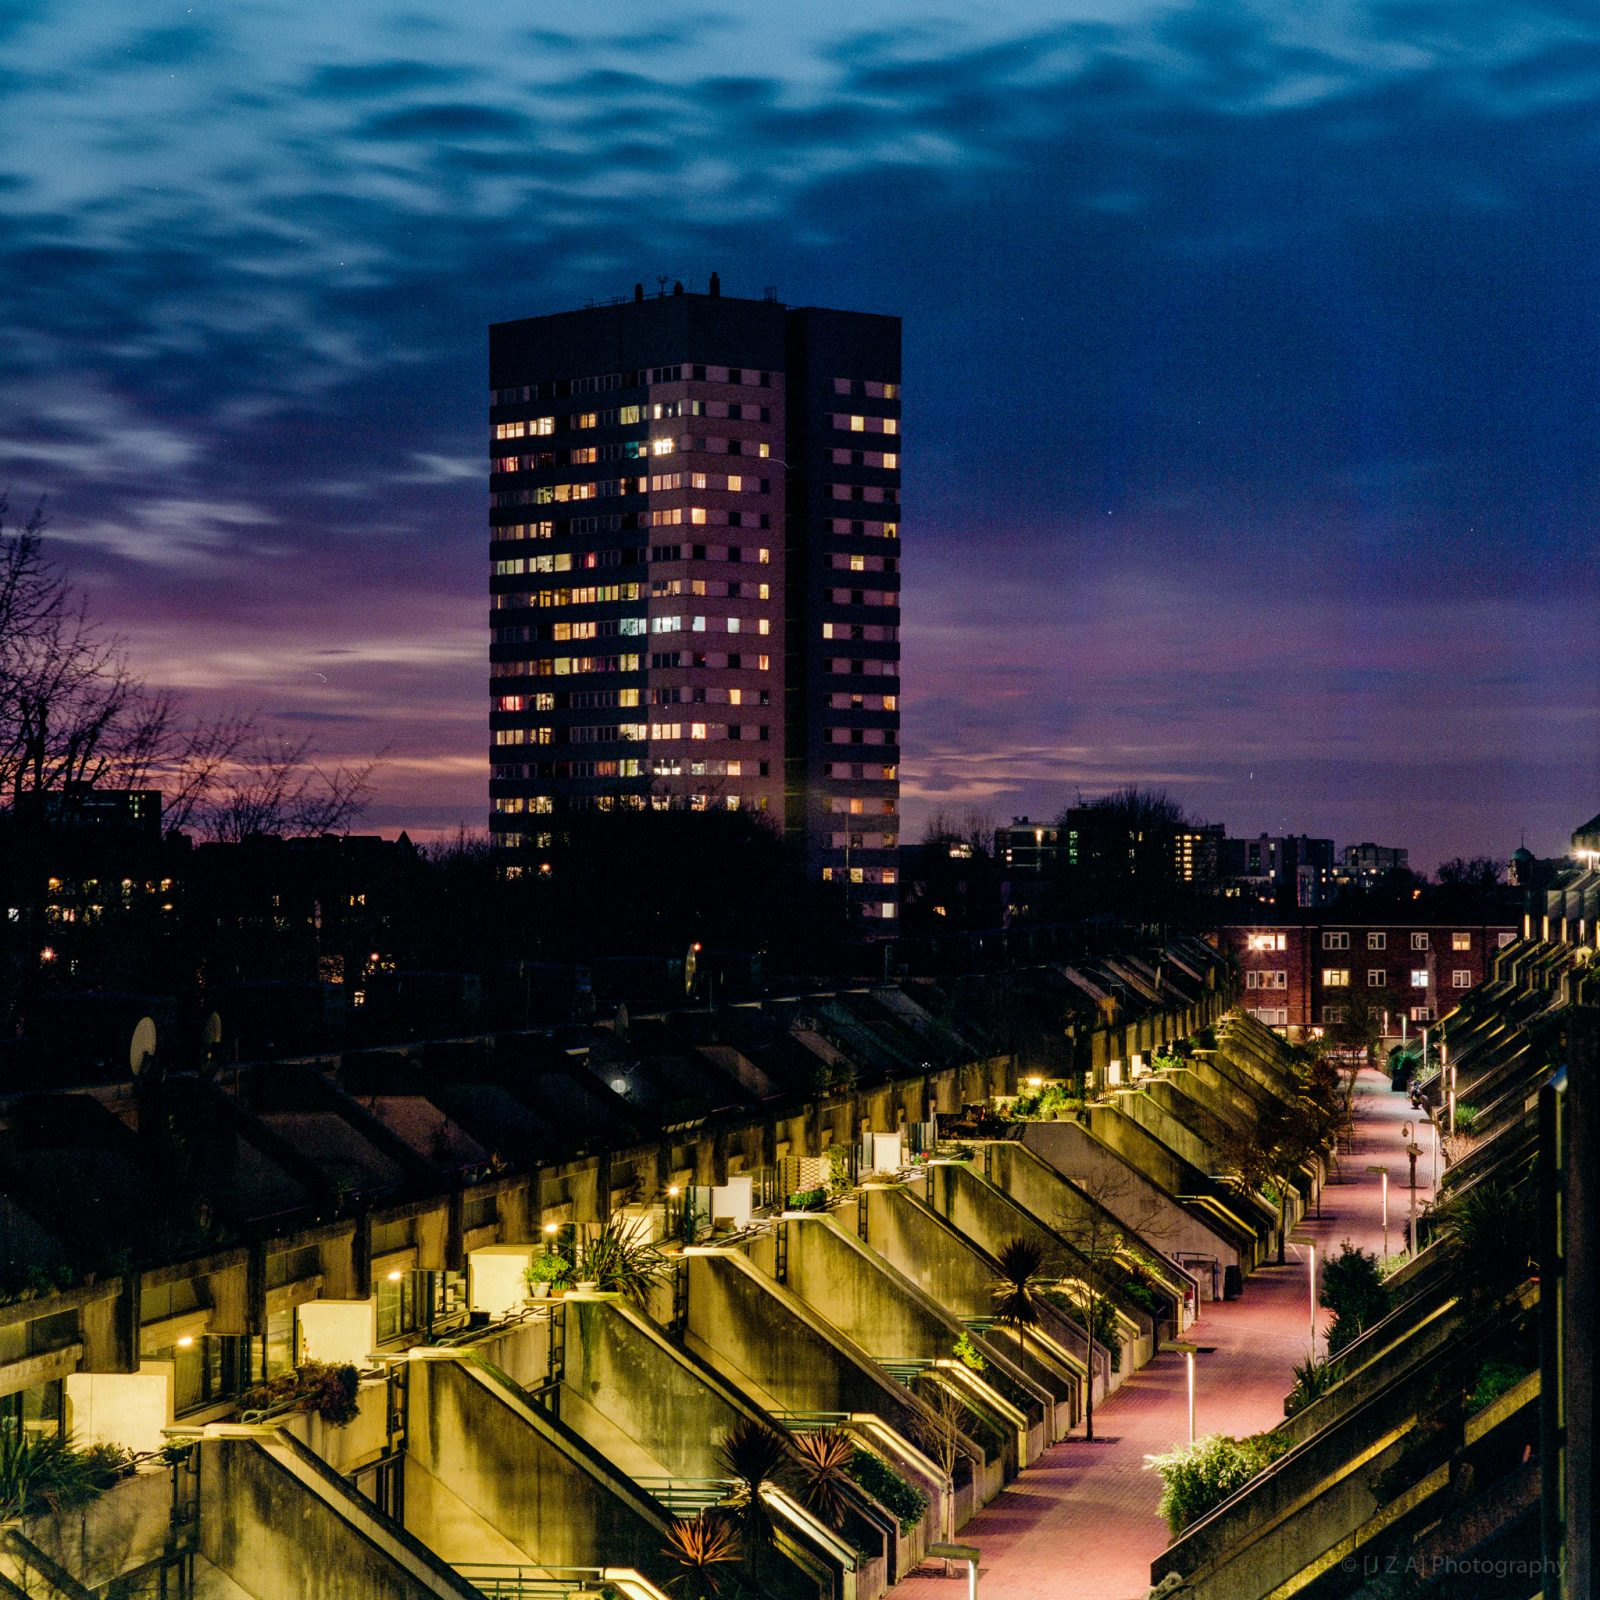 Alexandra and Ainsworth estate, aka Rowley Way